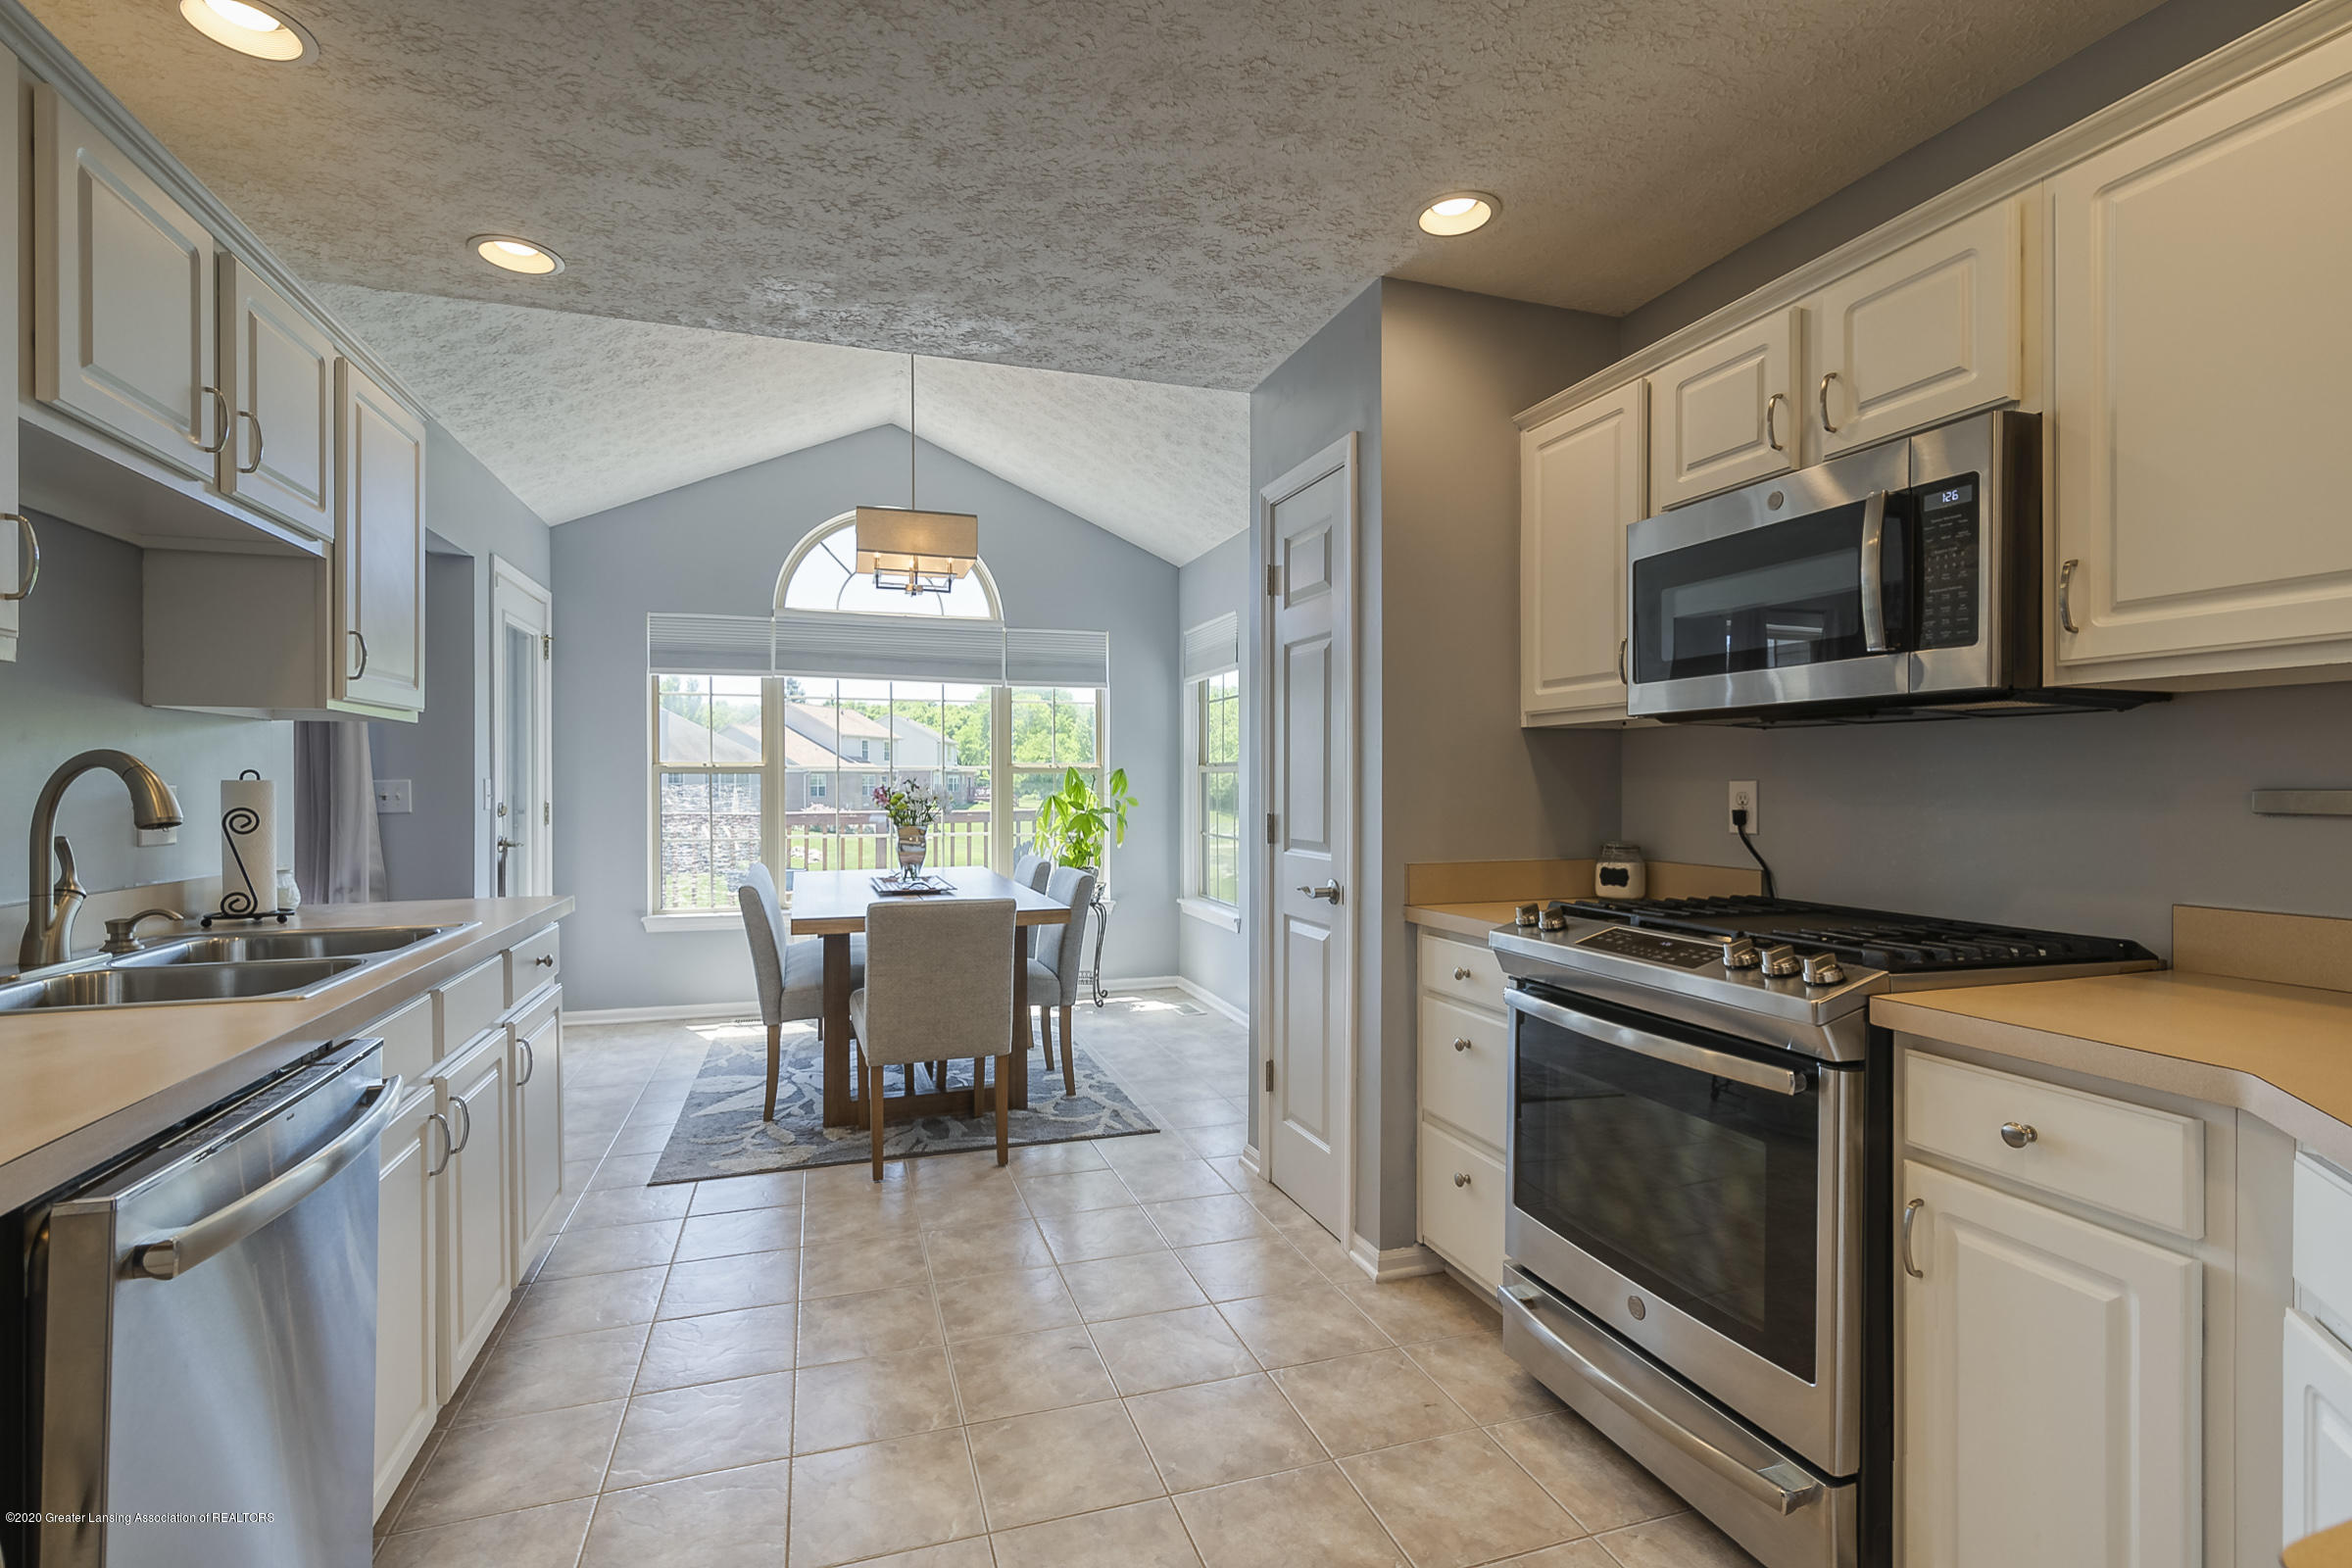 4092 Pheasant Run - KITCHEN - 13